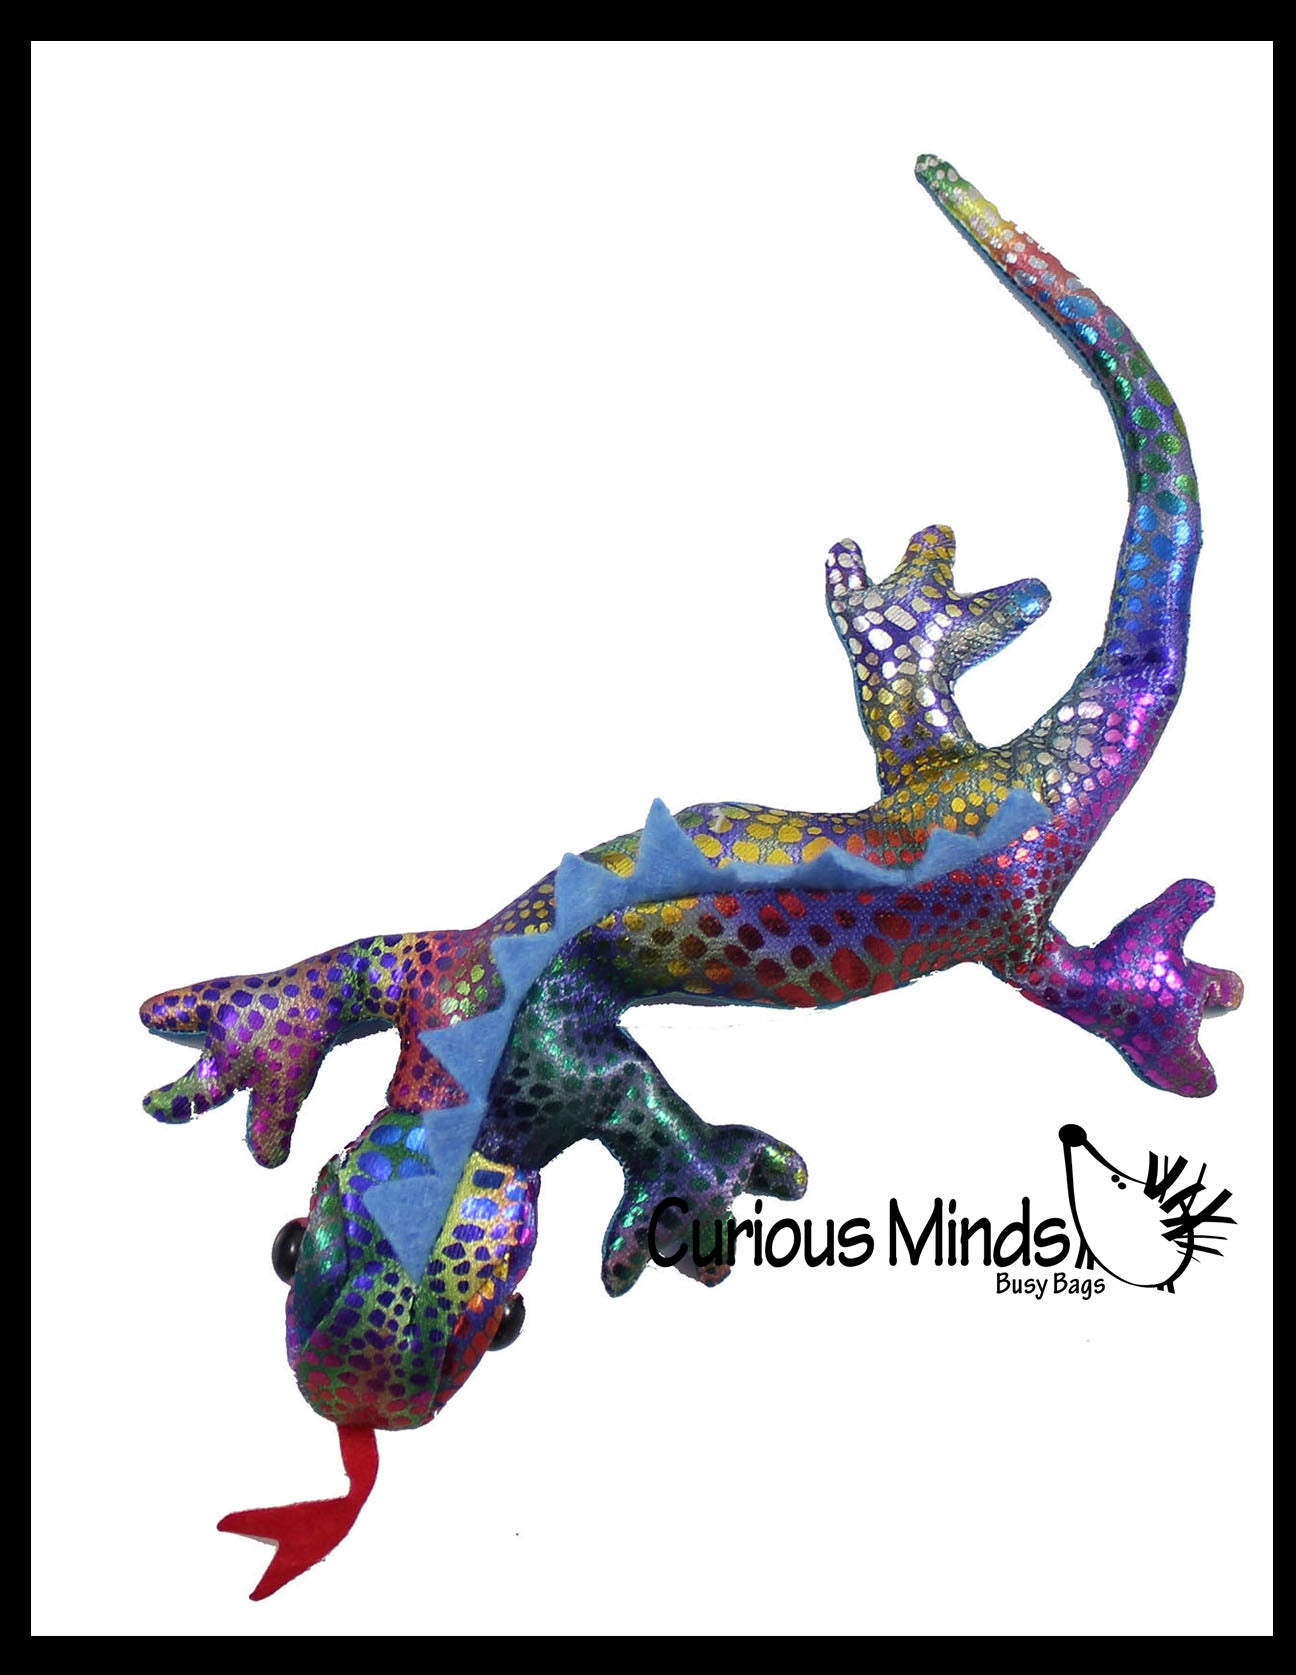 Sand Filled Stuffed Animals, Lizard Sand Filled Animal Toy Heavy Weighted Sandbag Animal Plush Be Curious Minds Busy Bags